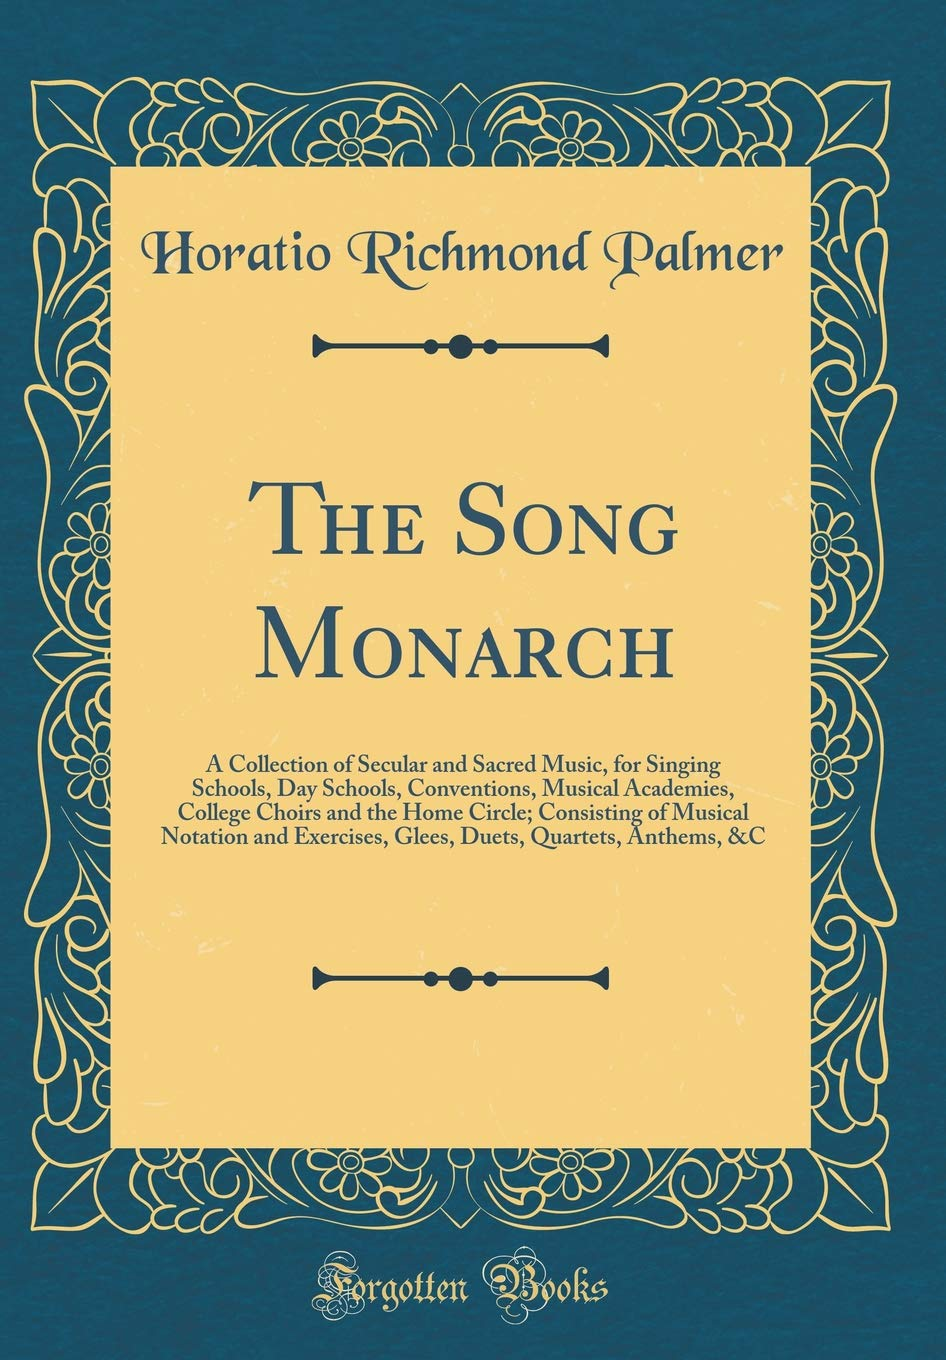 Download The Song Monarch: A Collection of Secular and Sacred Music, for Singing Schools, Day Schools, Conventions, Musical Academies, College Choirs and the ... Glees, Duets, Quartets, Anthems, &C PDF